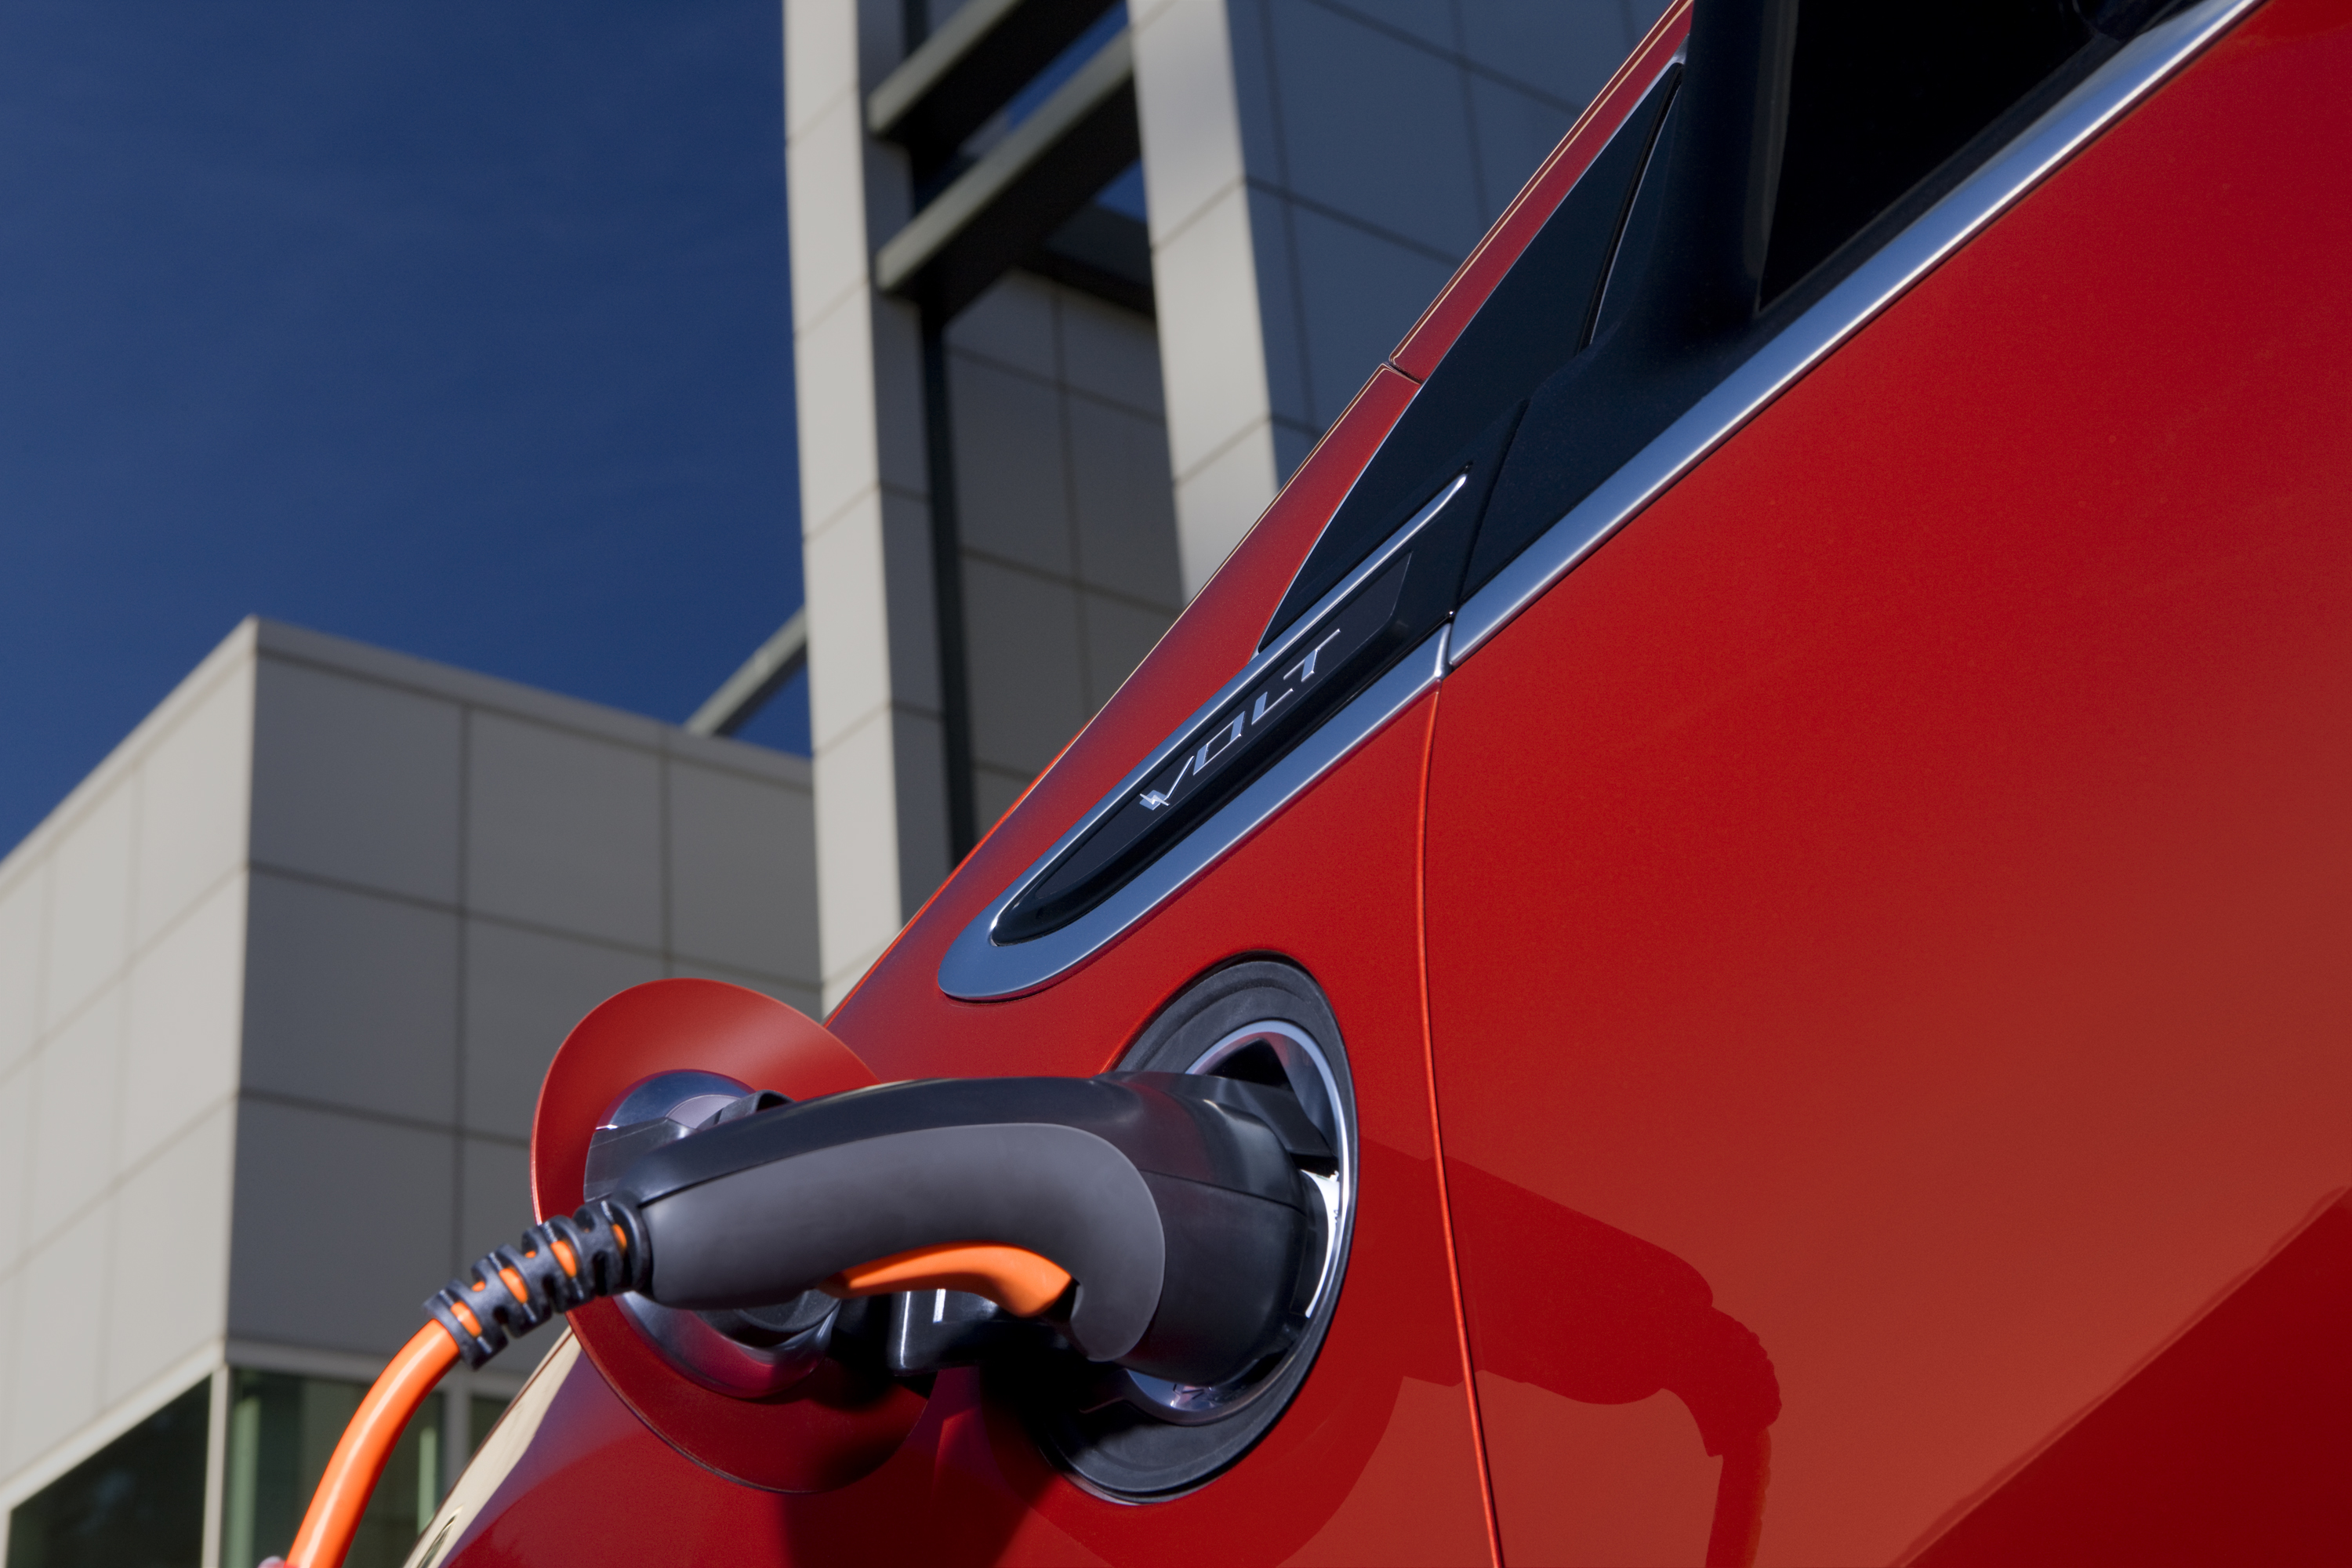 Chevy Dealers In Vt >> Taking care when plugging in the Chevy Volt - GM-VOLT : Chevy Volt Electric Car Site GM-VOLT ...